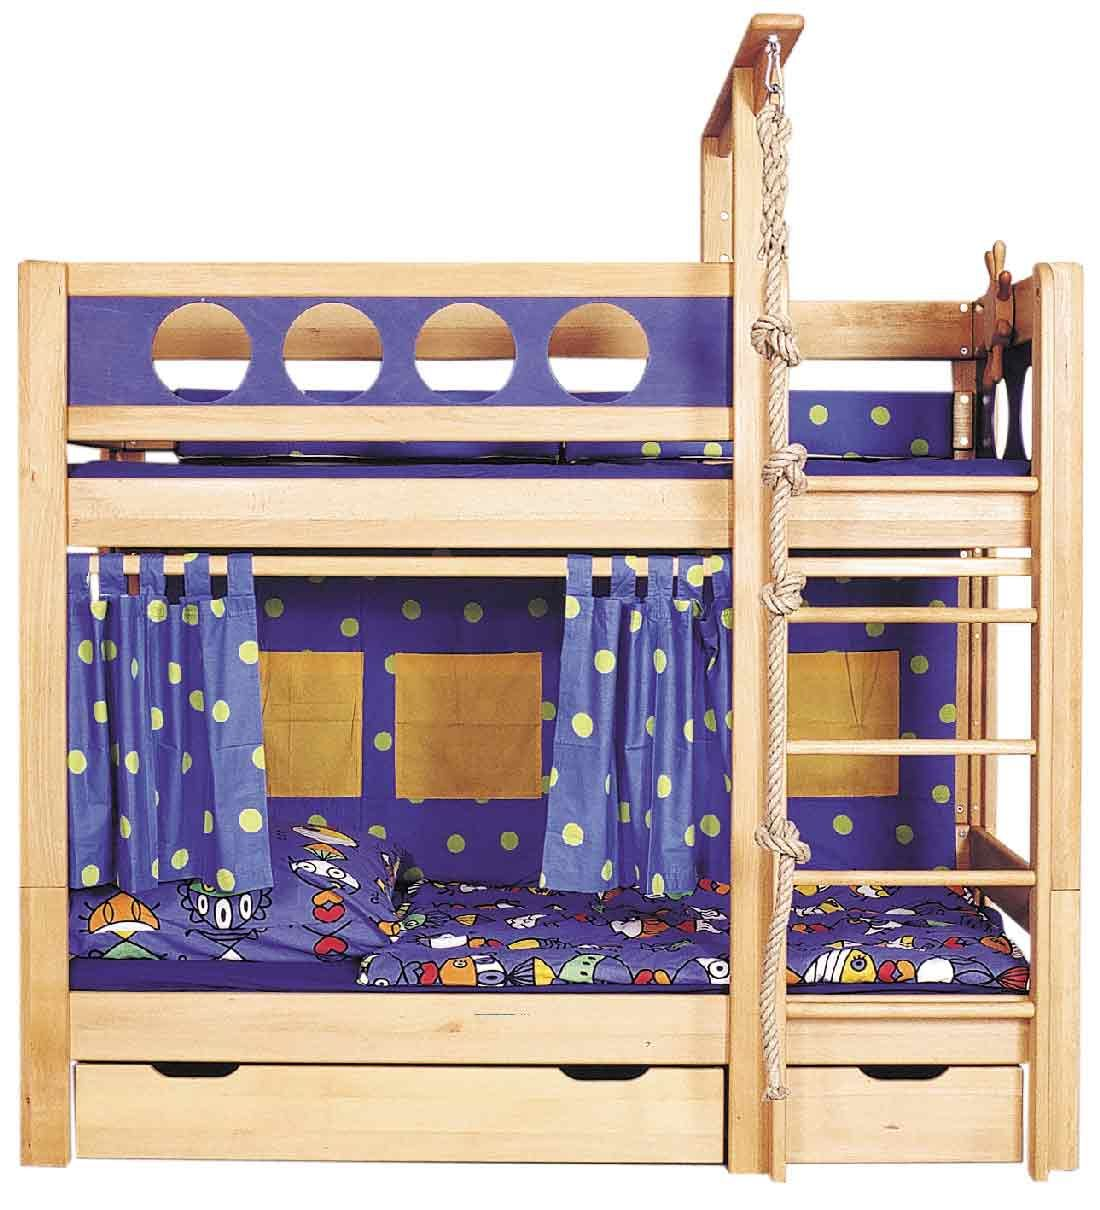 lit superpos enfant 90 x 200 cm pirate de breuyn en bois massif avec tiroirs de rangement. Black Bedroom Furniture Sets. Home Design Ideas